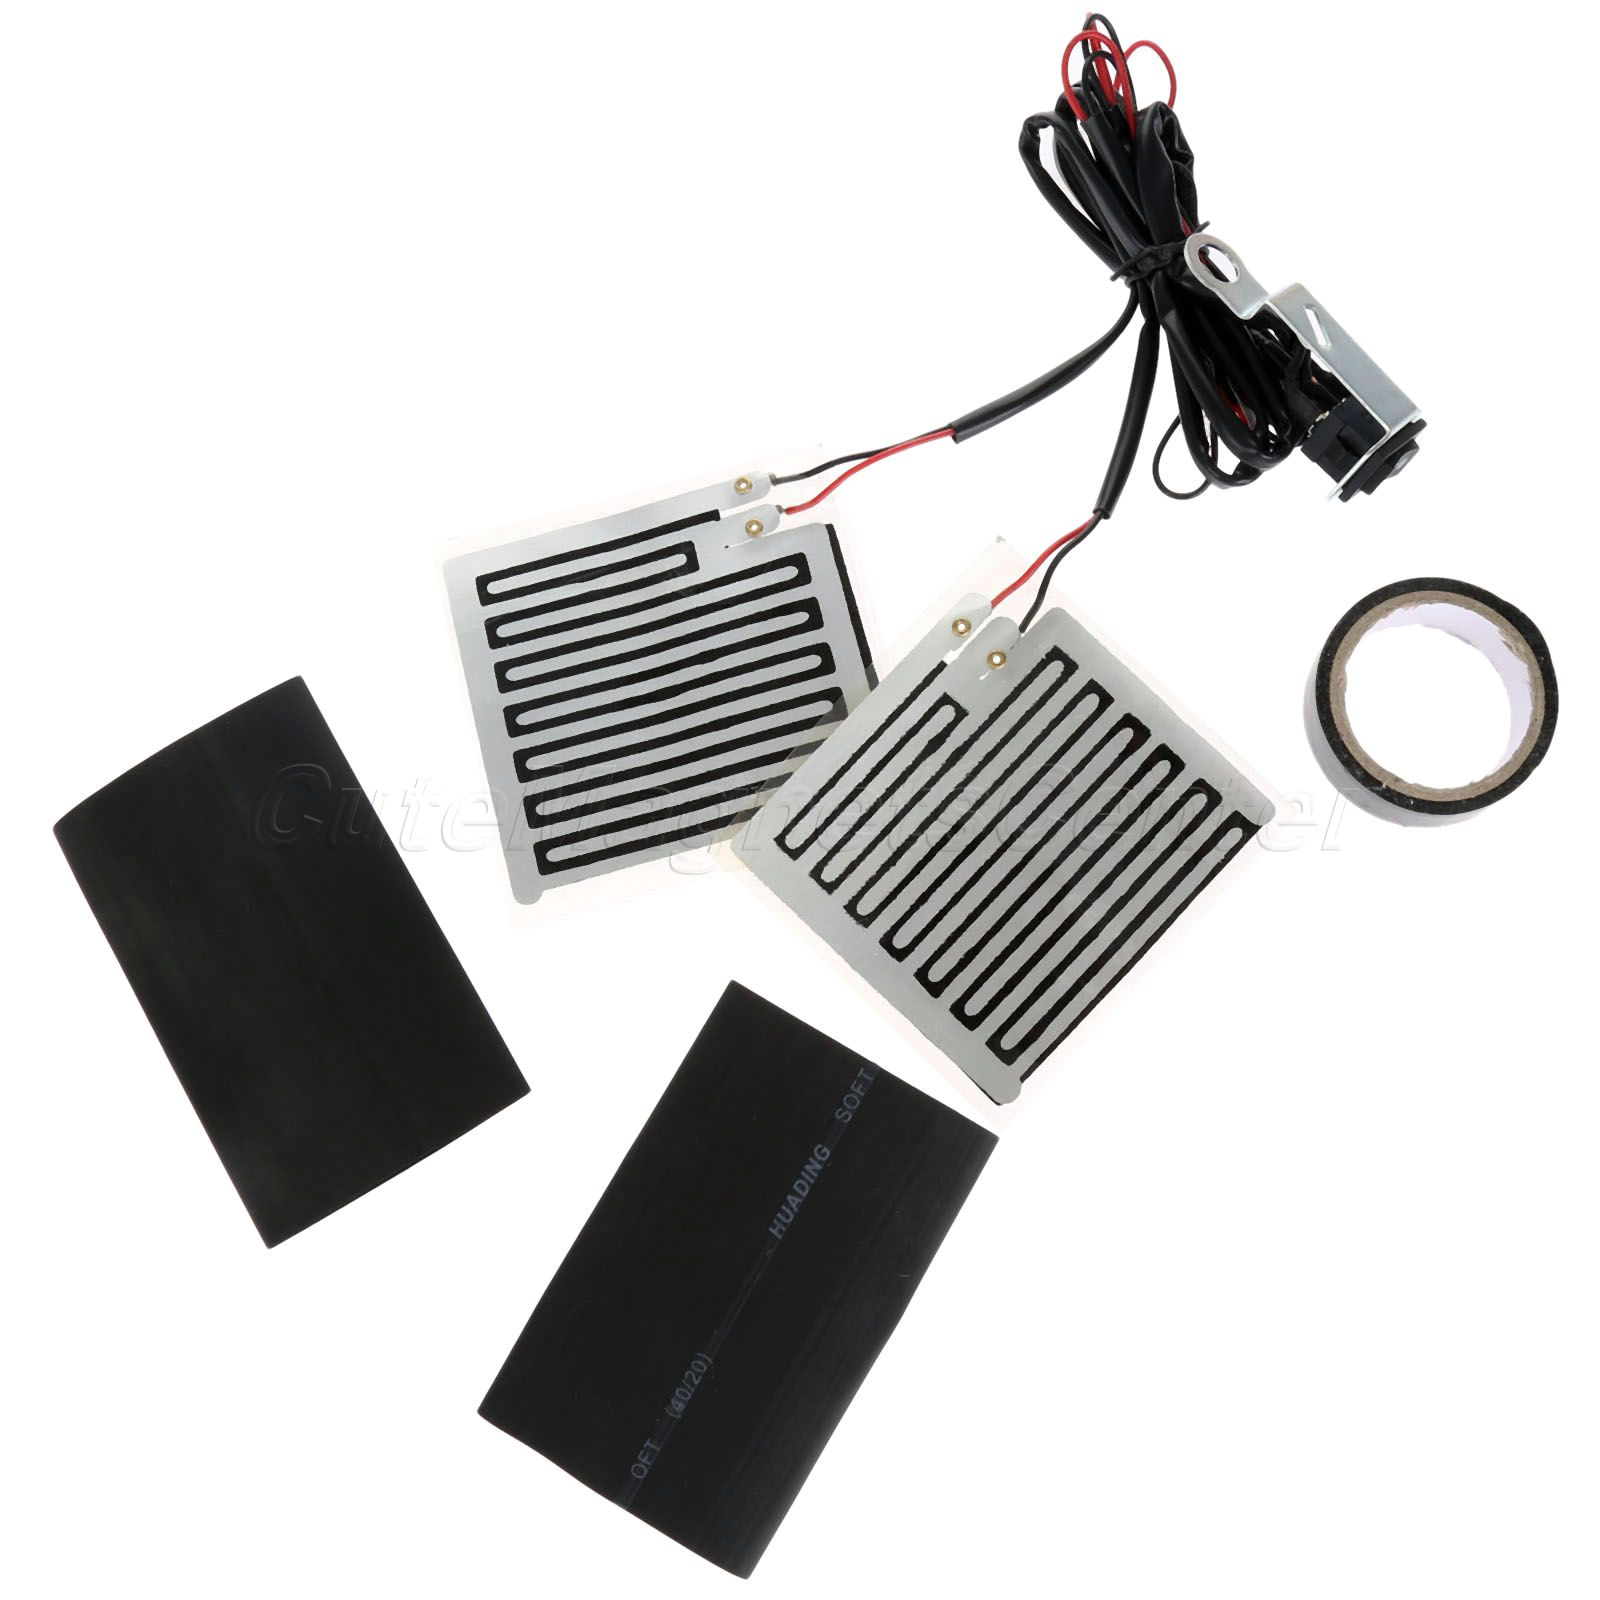 12v Handlebar Grip Heater Part Hand Warmer Kit Snowmobile Motorcycle ATV Bike for Electro Mobile Scooters Walking Tractor